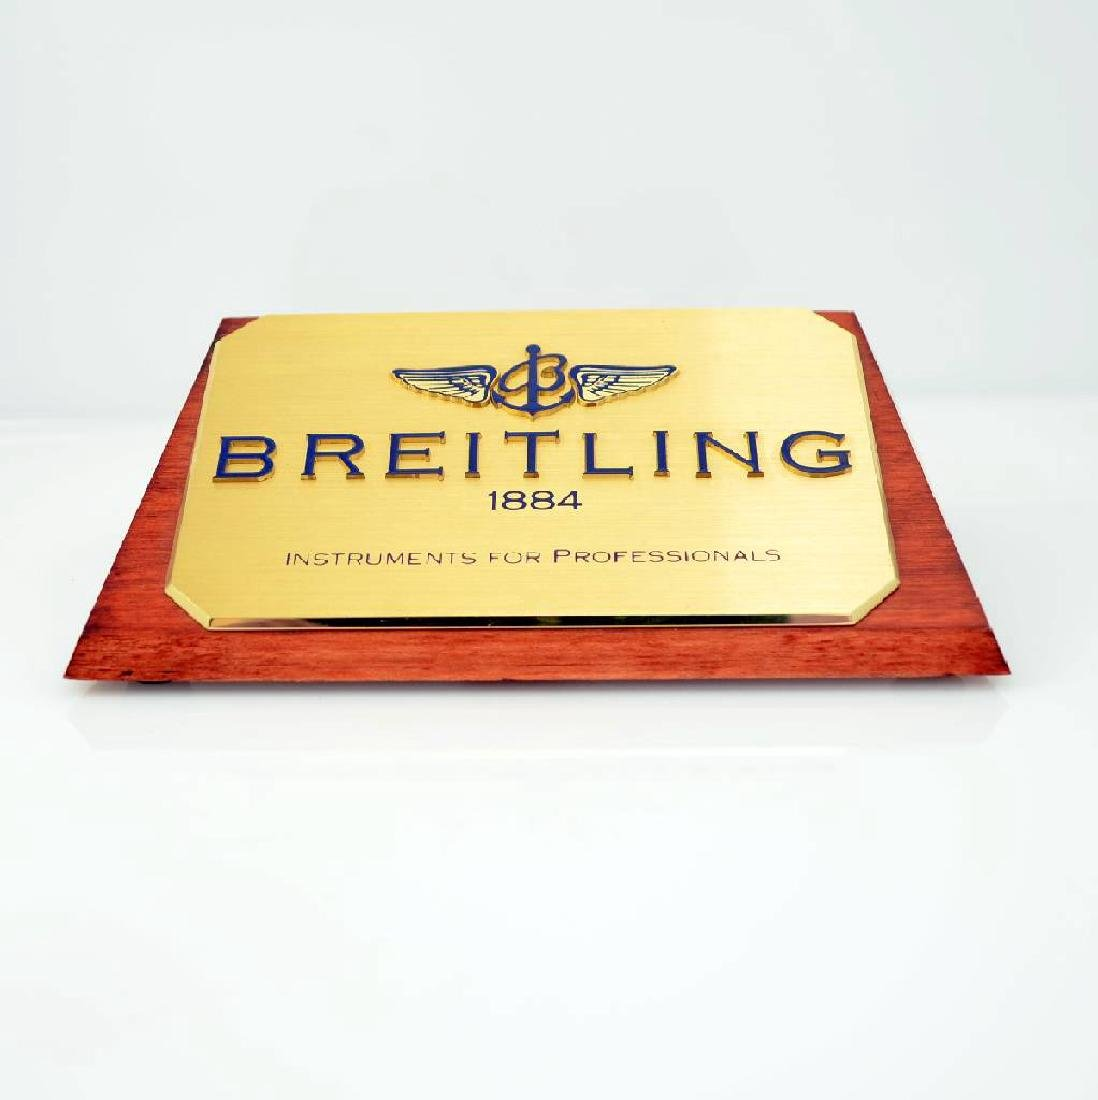 Set of 3 Breitling advertising signs